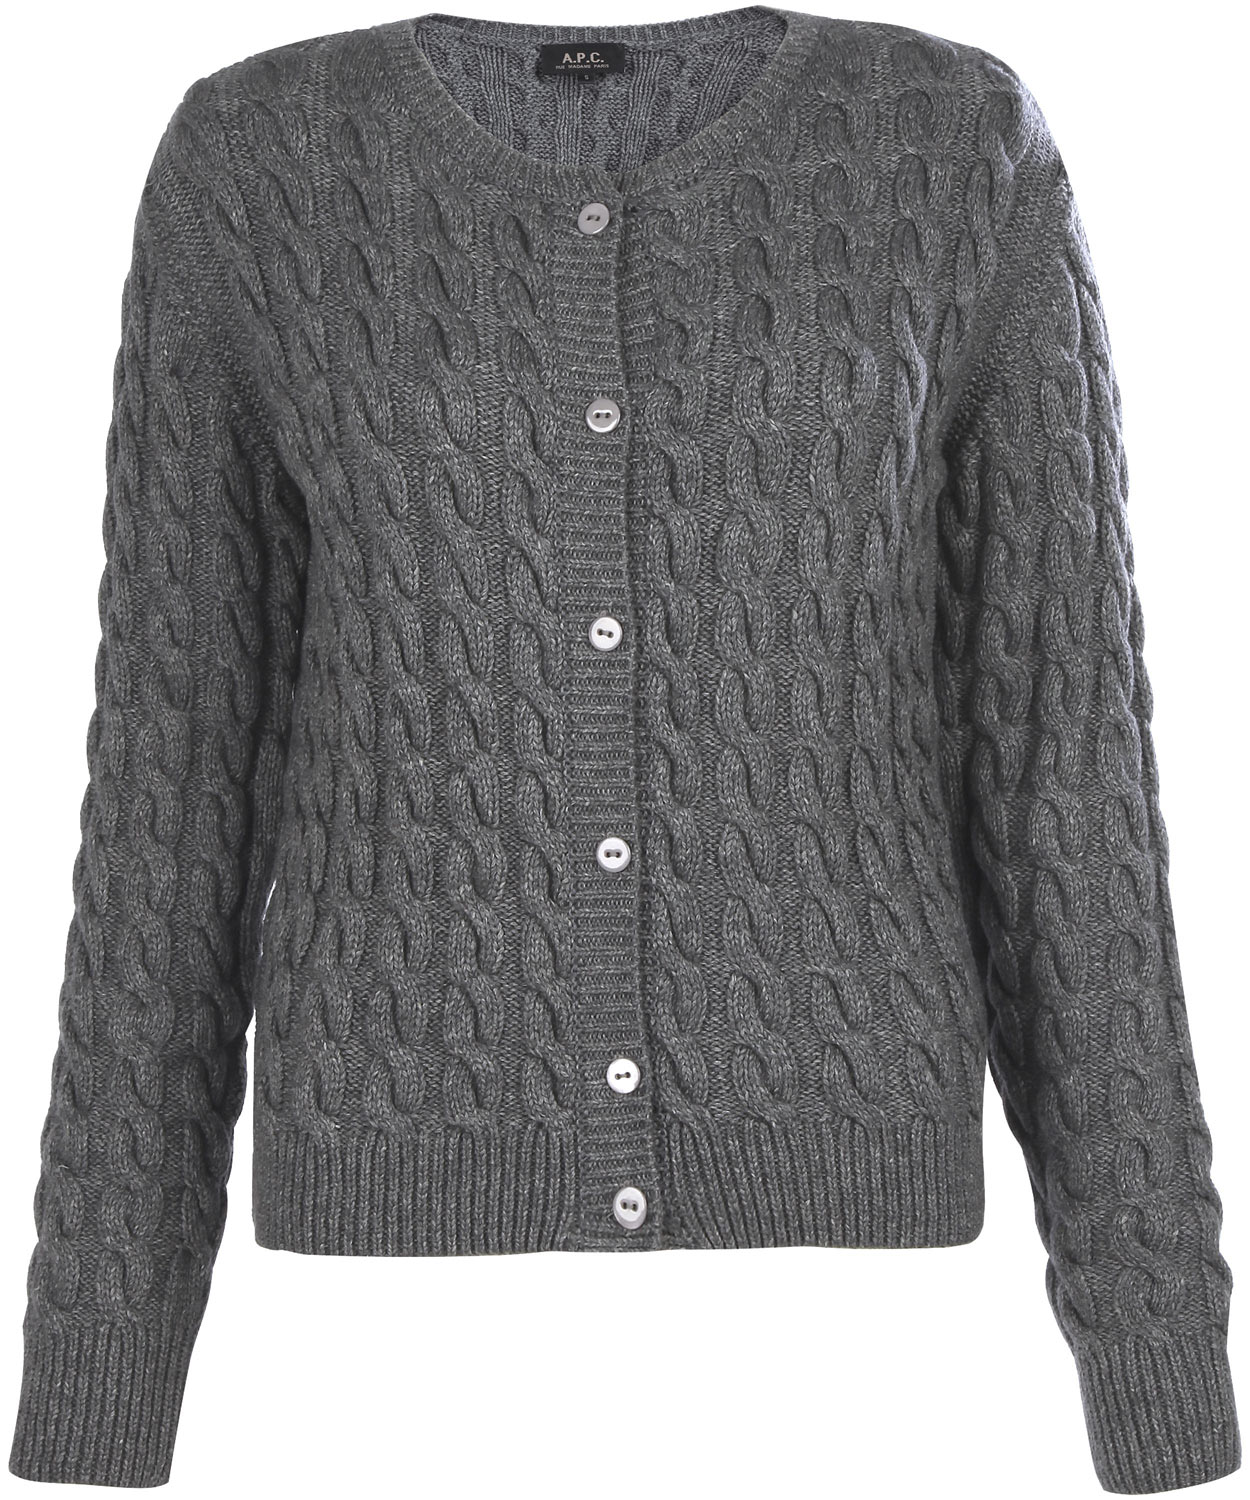 Find great deals on Plus Size Sweaters at Kohl's today! Sponsored Links Plus Size SONOMA Goods for Life™ Trellis Cable-Knit Sweater. sale. $ Original $ Plus Size Apt. 9® Textured Ruched Boatneck Sweater. sale. $ Original $